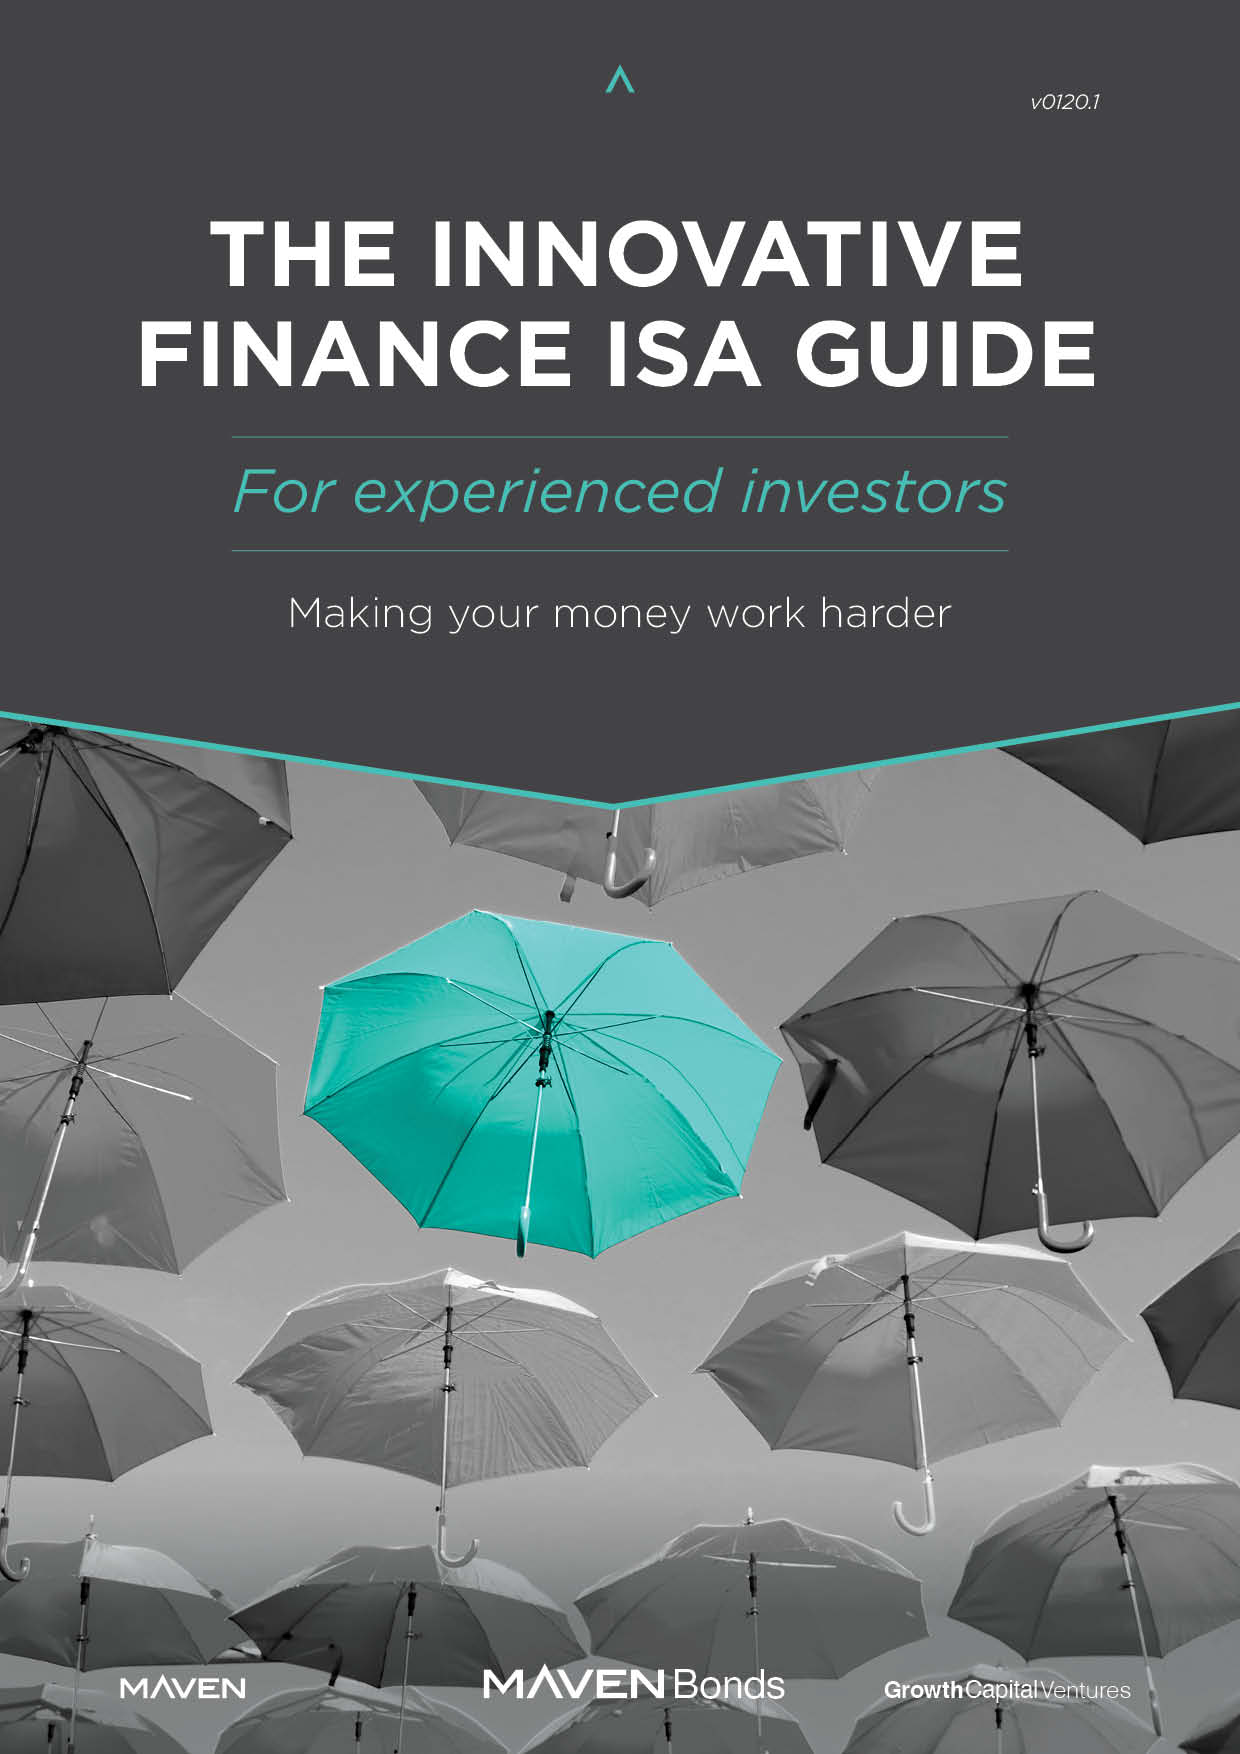 image for 'The Innovative Finance ISA Guide' guide